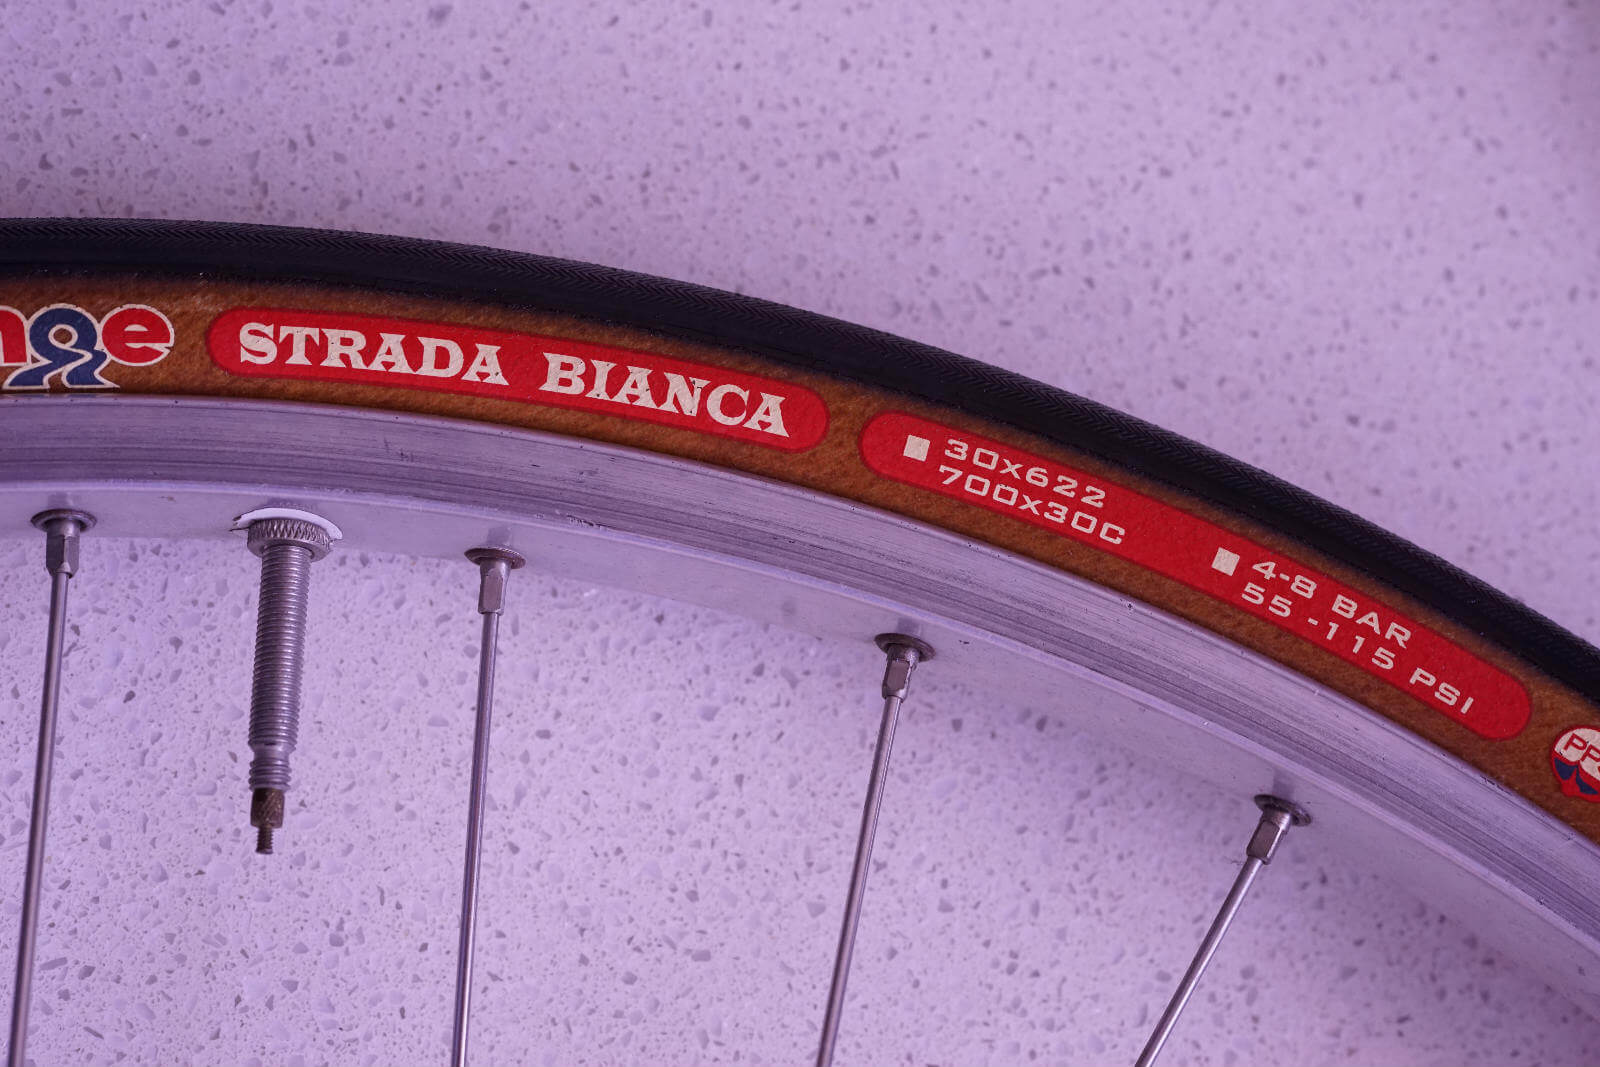 This 30mm gravel tyre is rated from 4 to 8 bar